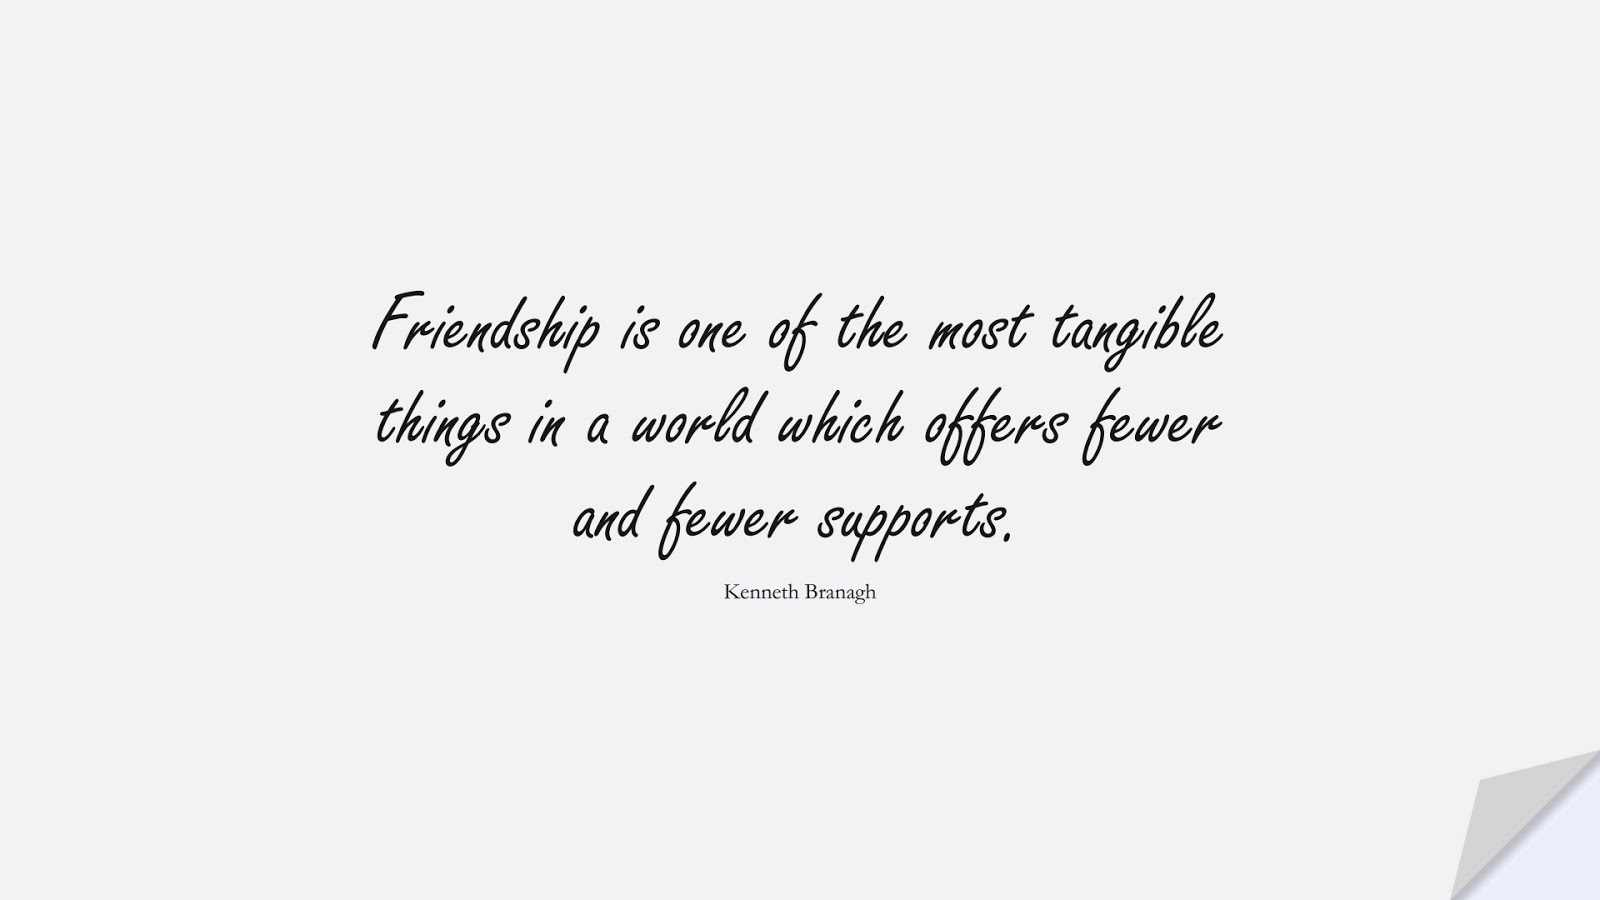 Friendship is one of the most tangible things in a world which offers fewer and fewer supports. (Kenneth Branagh);  #FriendshipQuotes